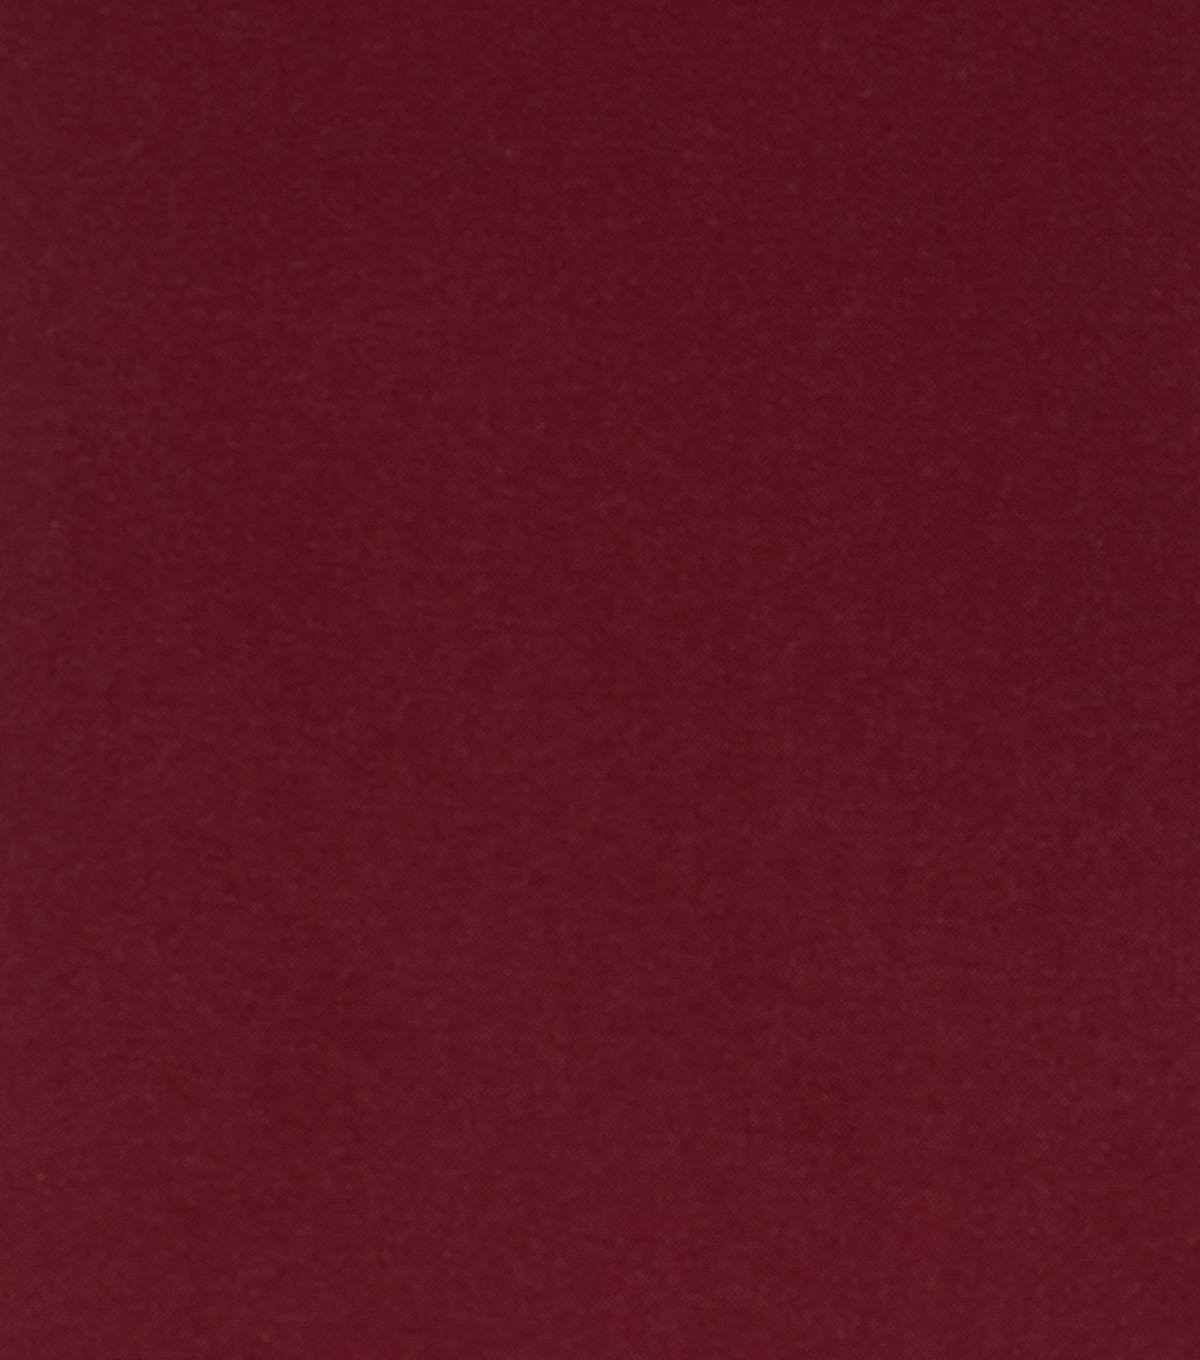 Home Decor 8\u0022x8\u0022 Fabric Swatch-Signature Series Solitaire  Cabernet